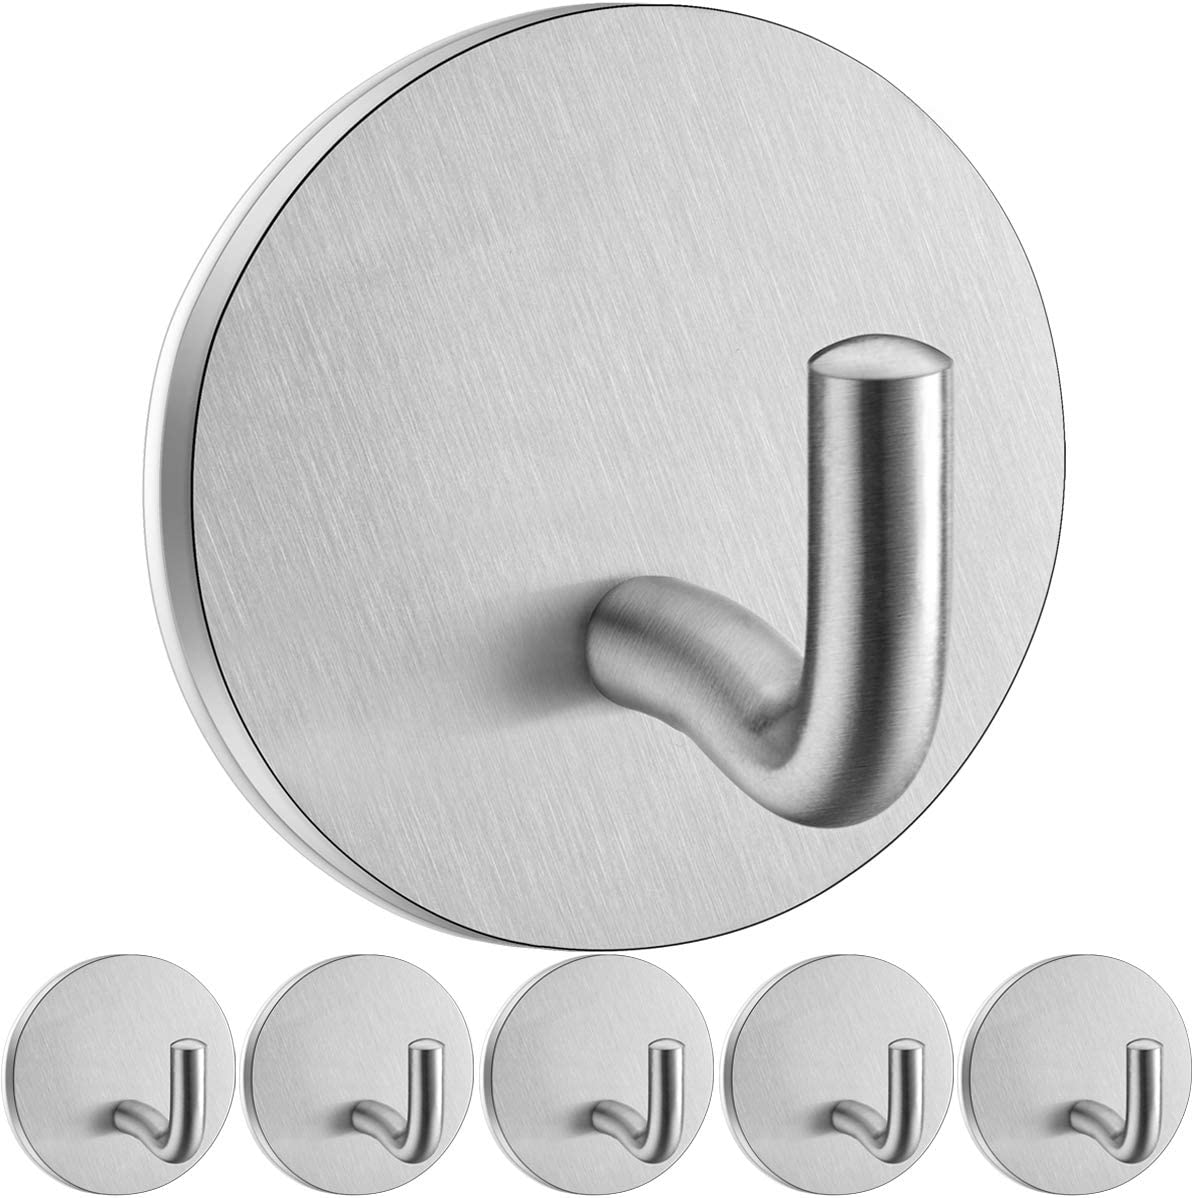 Adhesive Wall Hooks for Hanging Towel Coat,Stick on Hooks for Hanging Heavy Duty Robe Hooks for Bathroom Hooks for Wall,Sontiy Towel Hanger Brushed SUS304 Stainless Steel Hooks-6 Pack